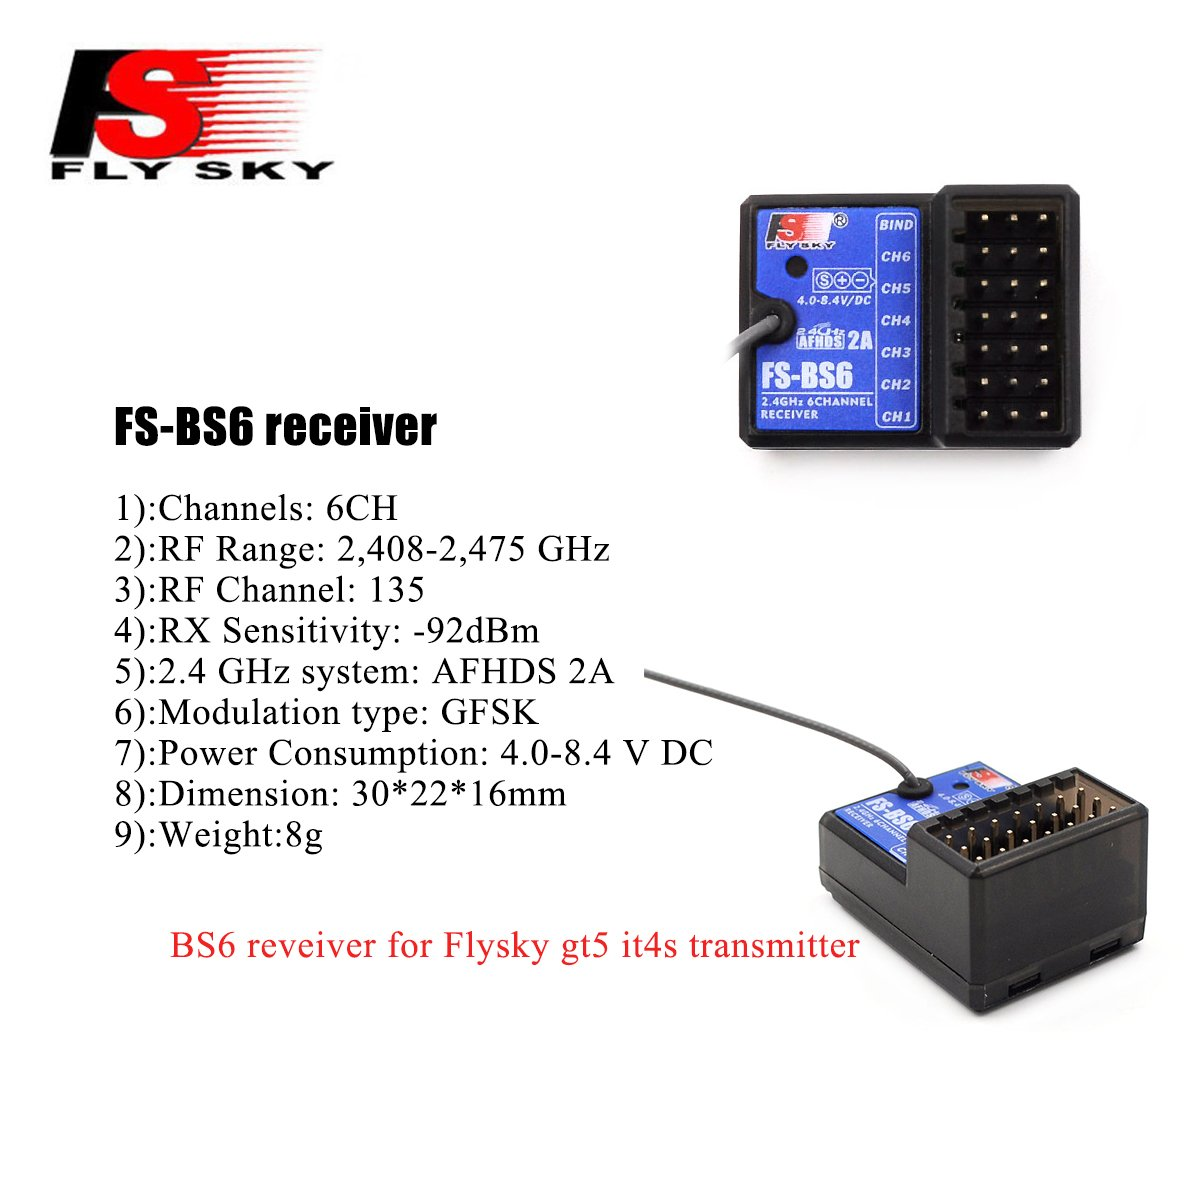 Flysky Receiver Wiring Electrical Diagrams Fs R9b Amazon Com Bs6 6ch Fail Safe For Gt5 It4s Gt3b